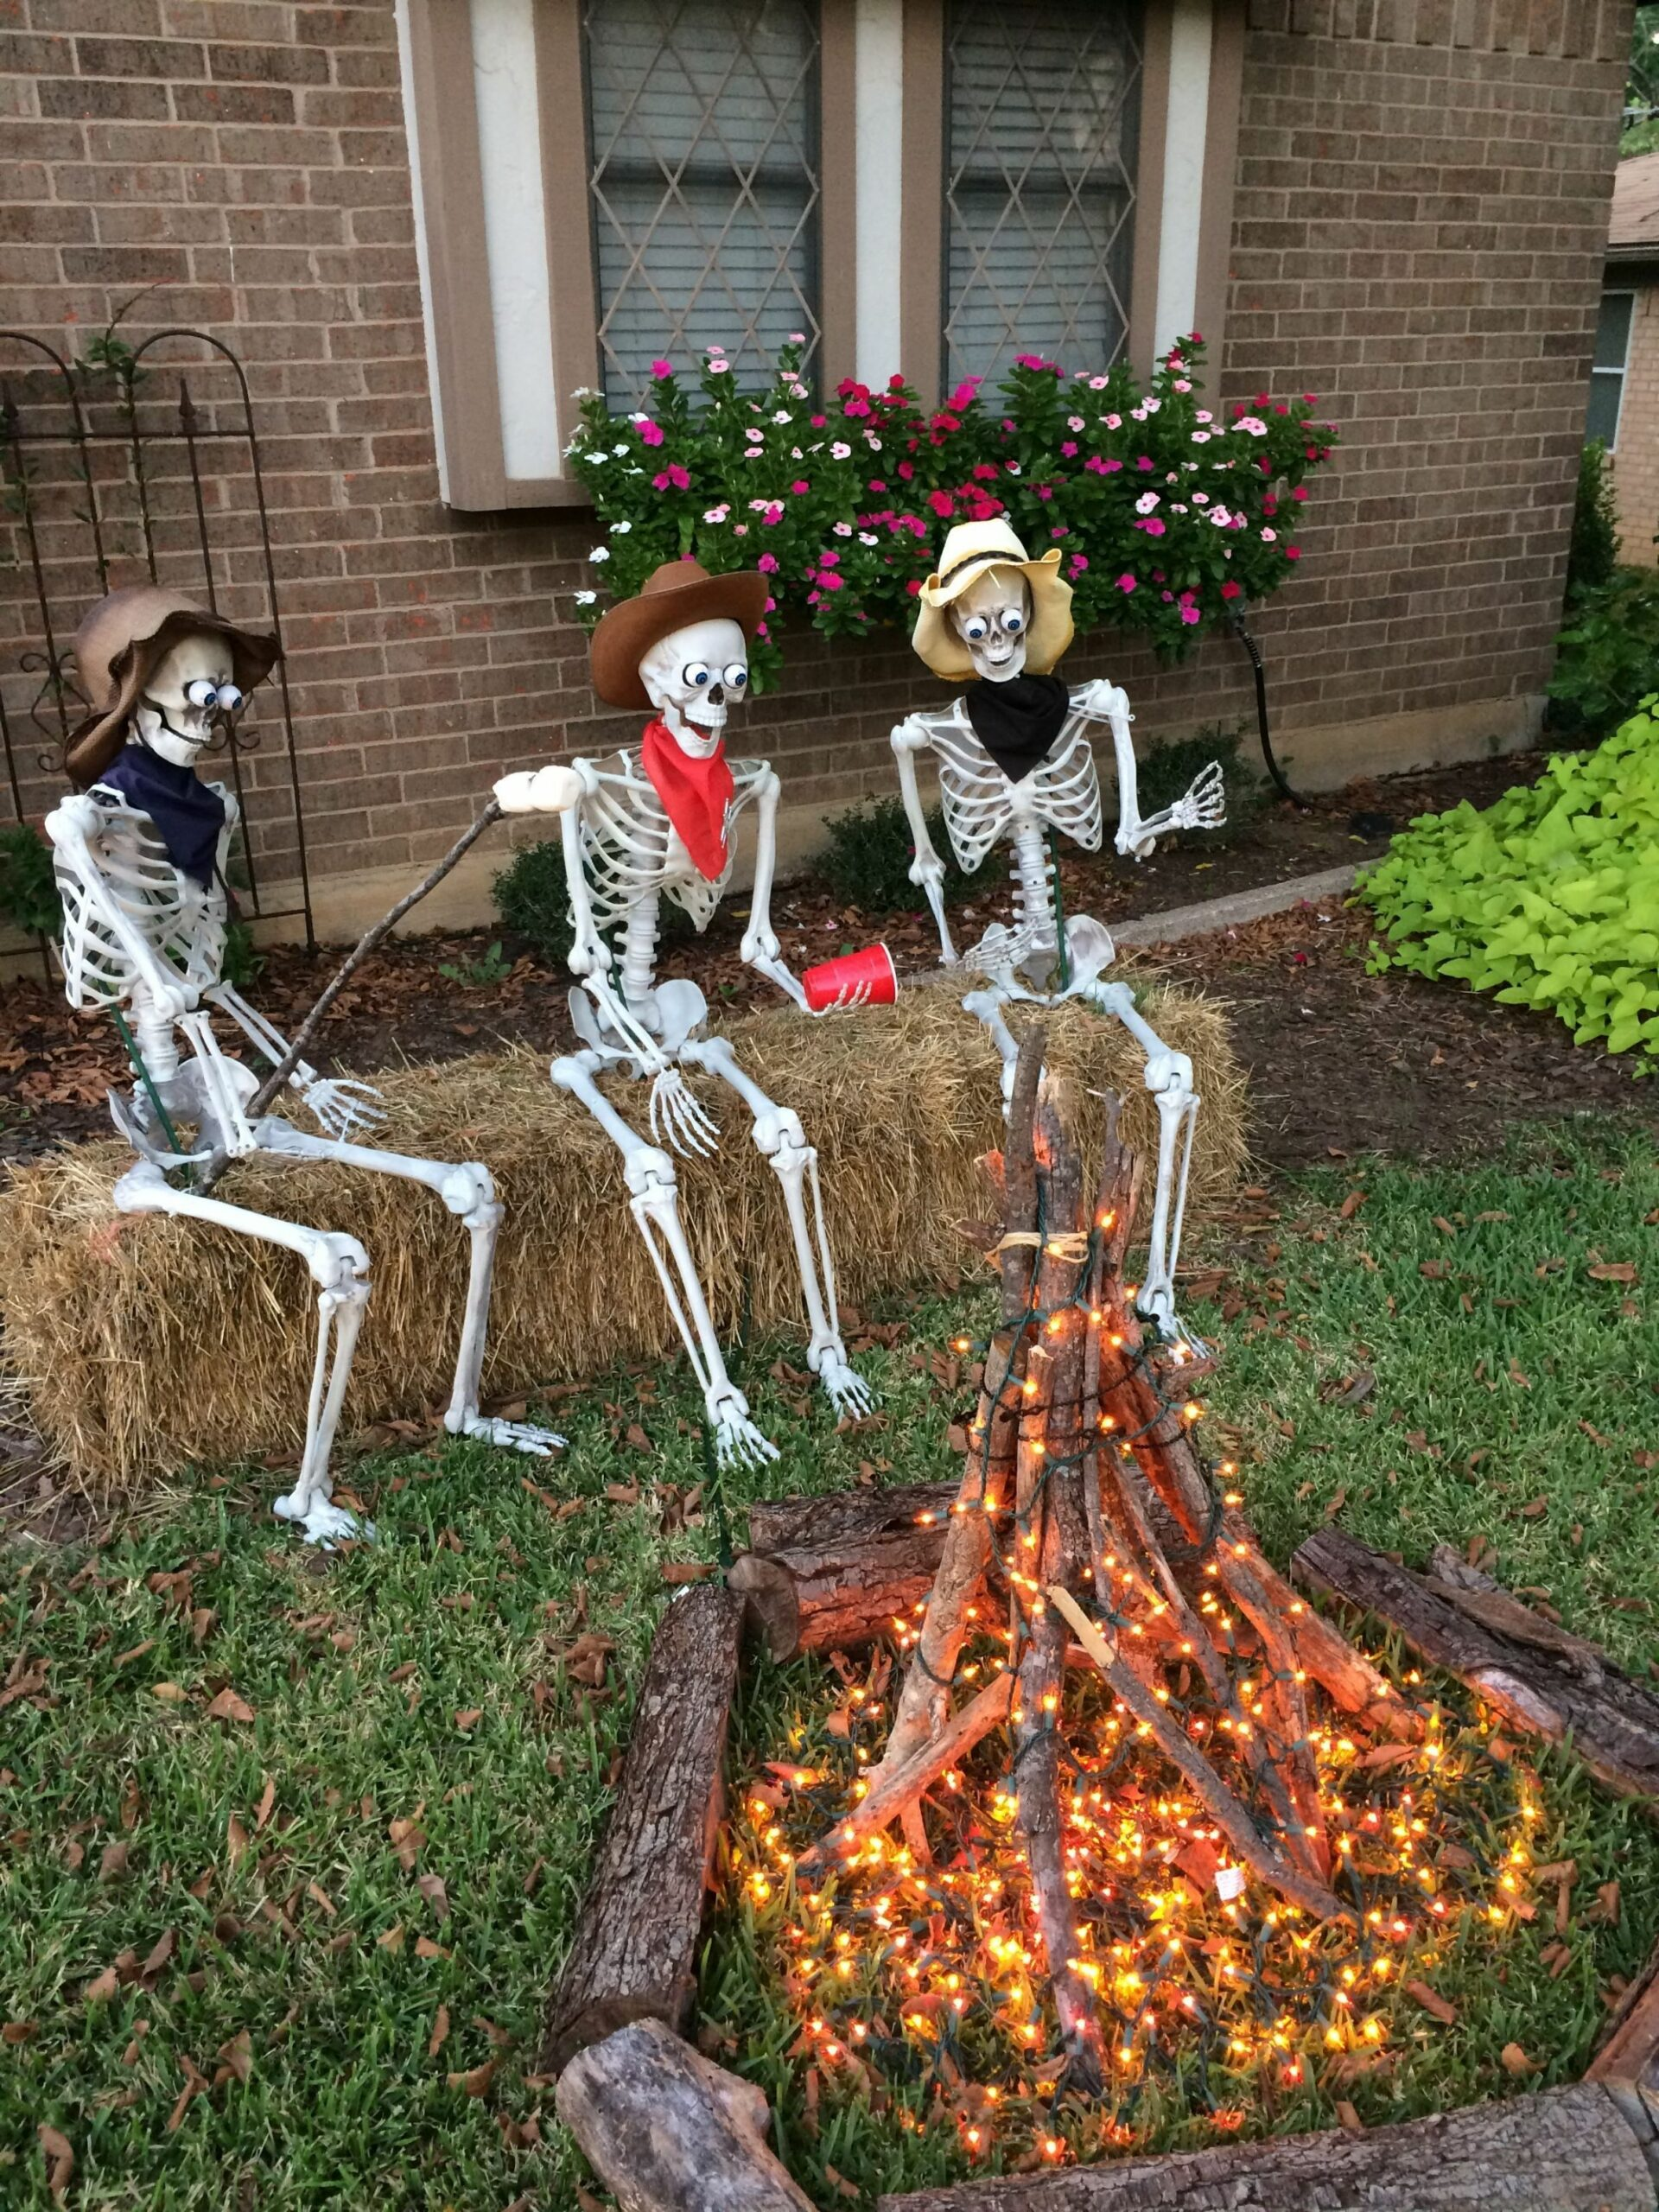 ☆ 8 Scary Halloween Yard Ideas (With images) | Halloween outdoor ..